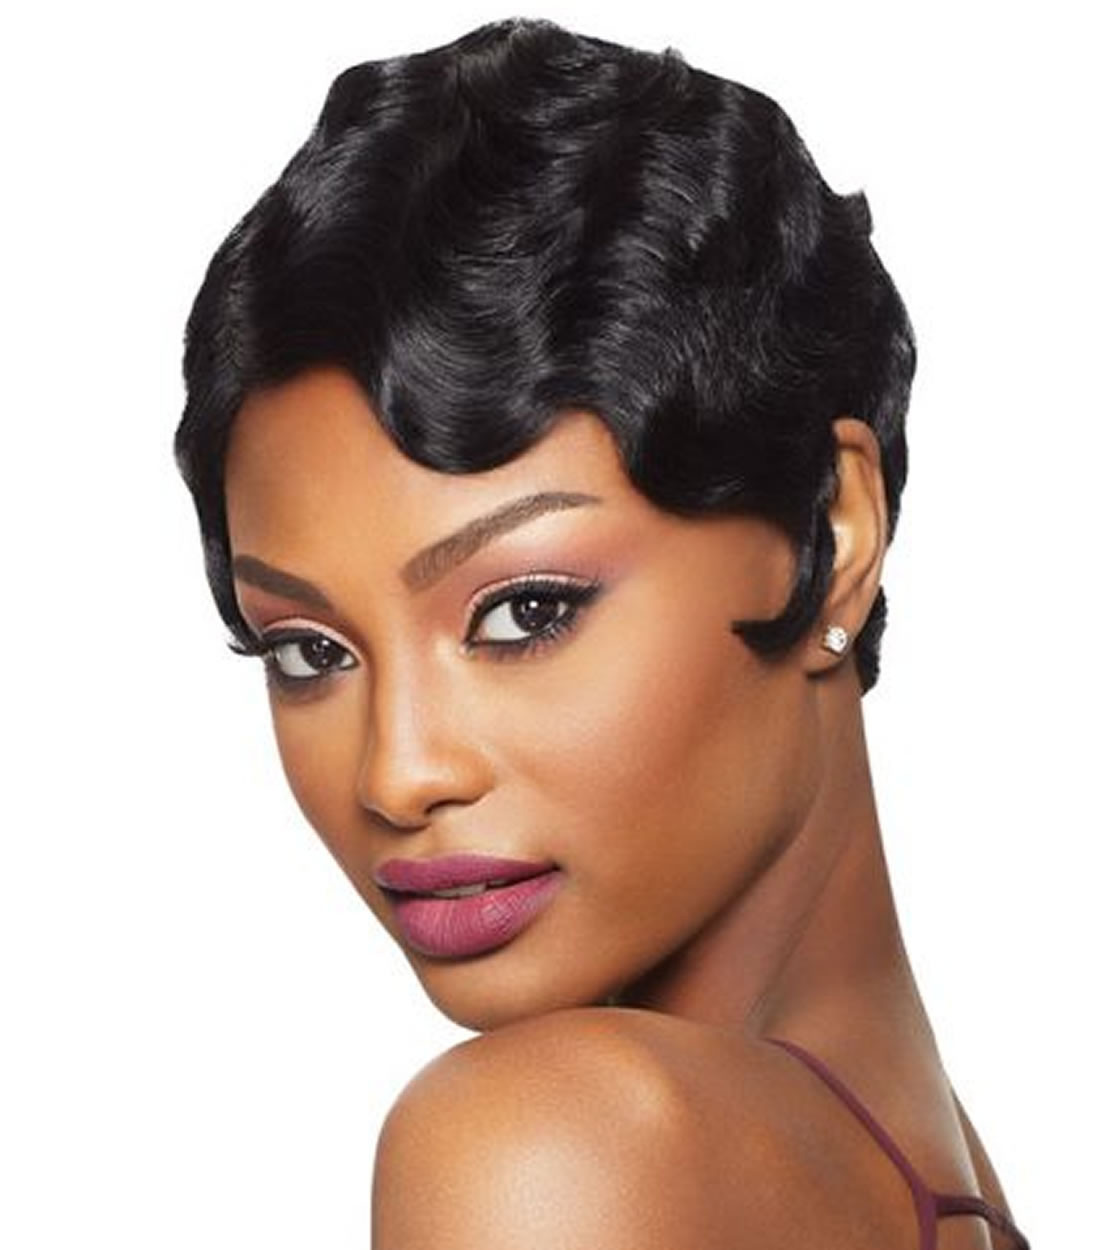 Best ideas about Short African American Hairstyles 2019 . Save or Pin 32 Exquisite African American Short Haircuts and Now.